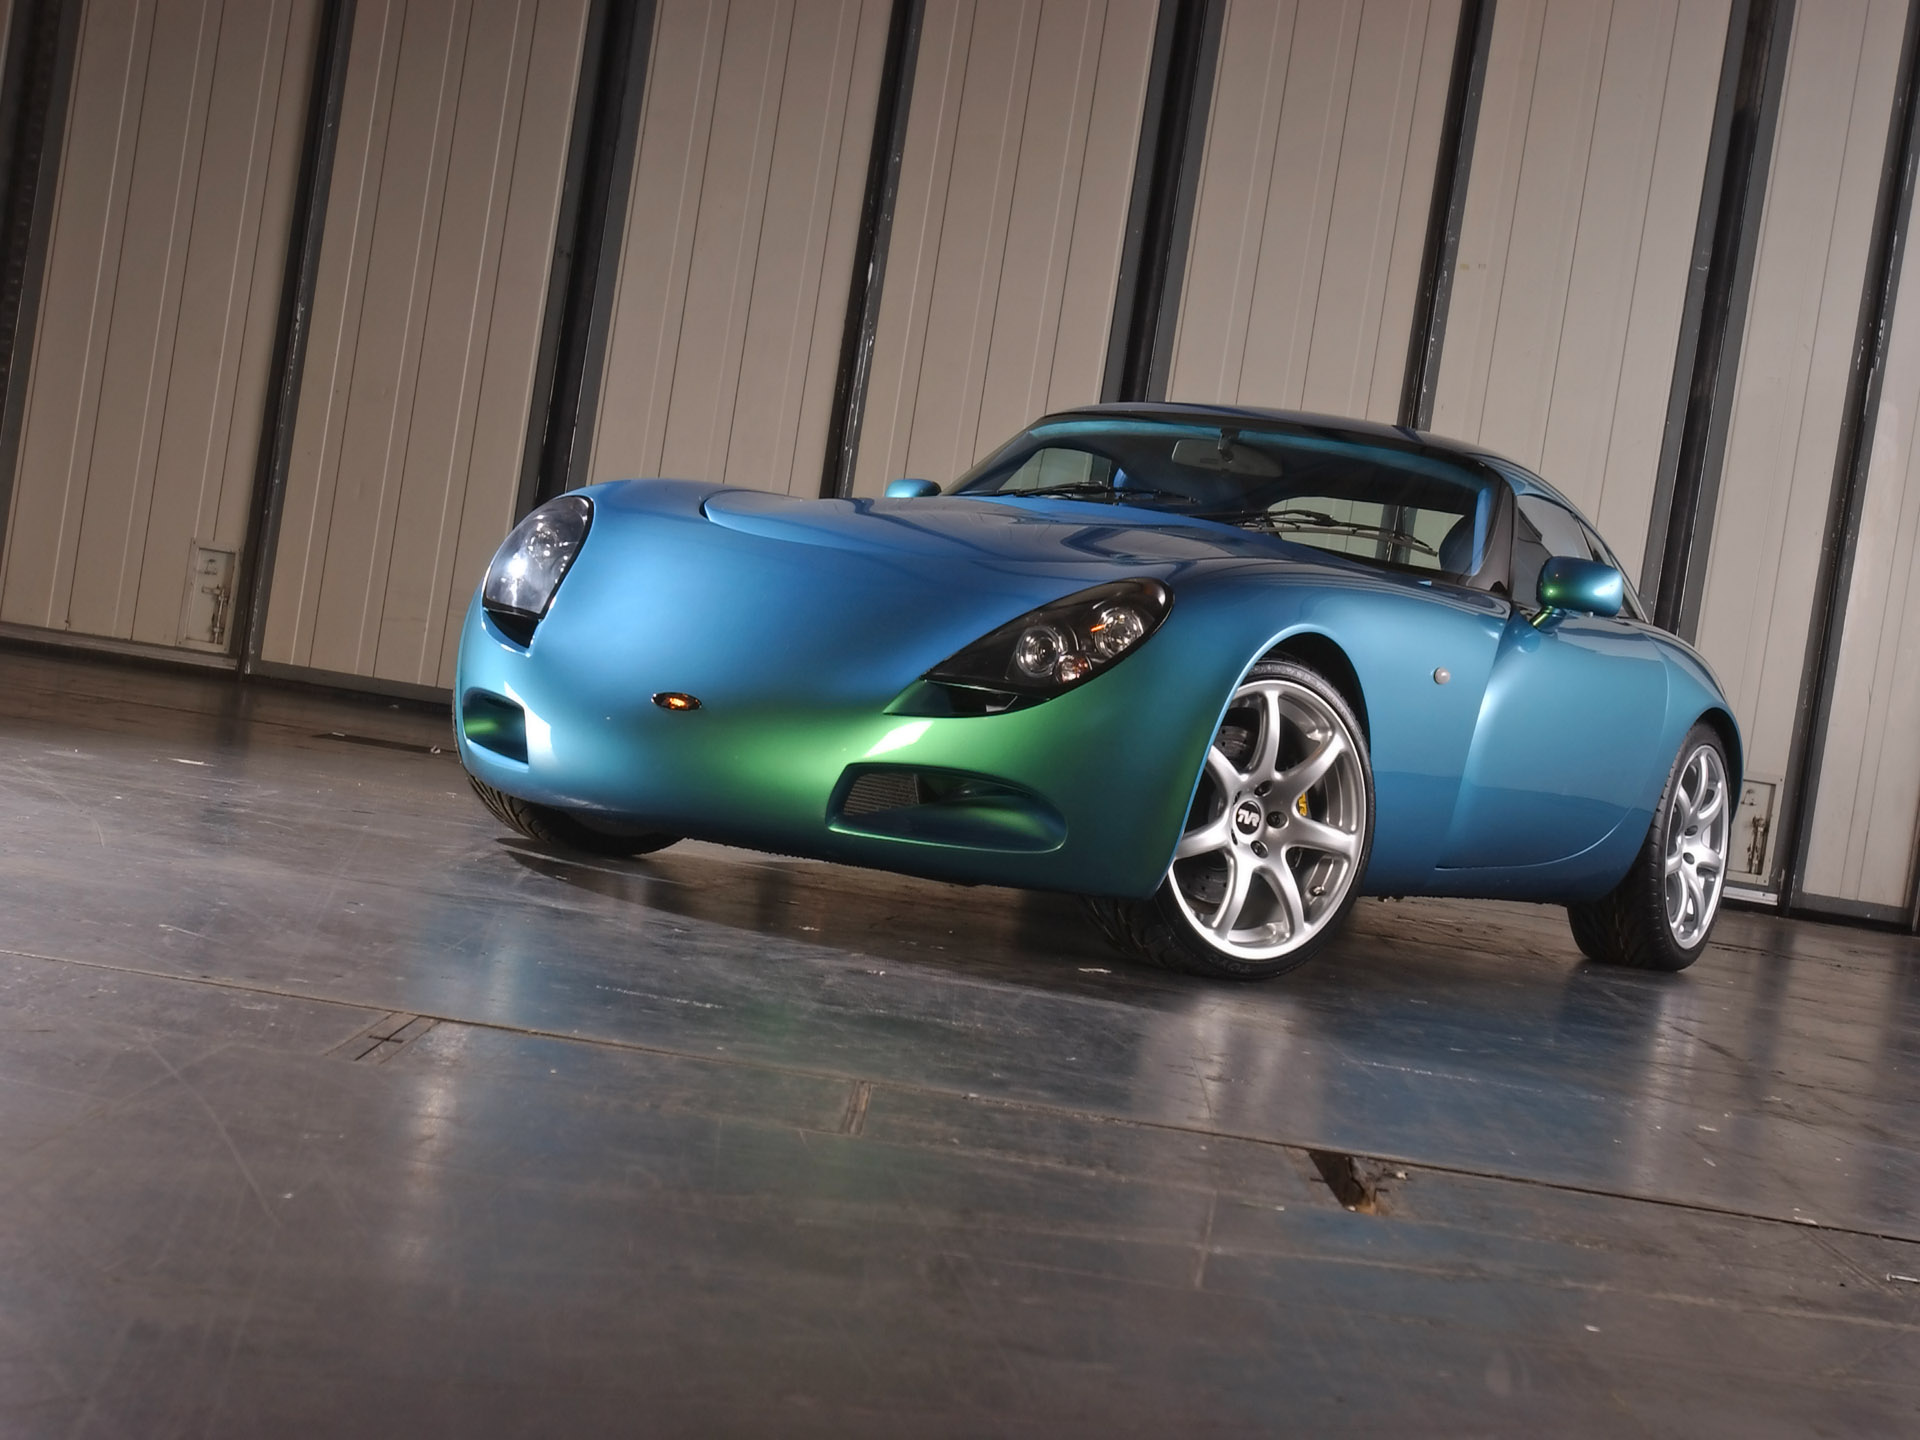 Tvr t350 photo - 5